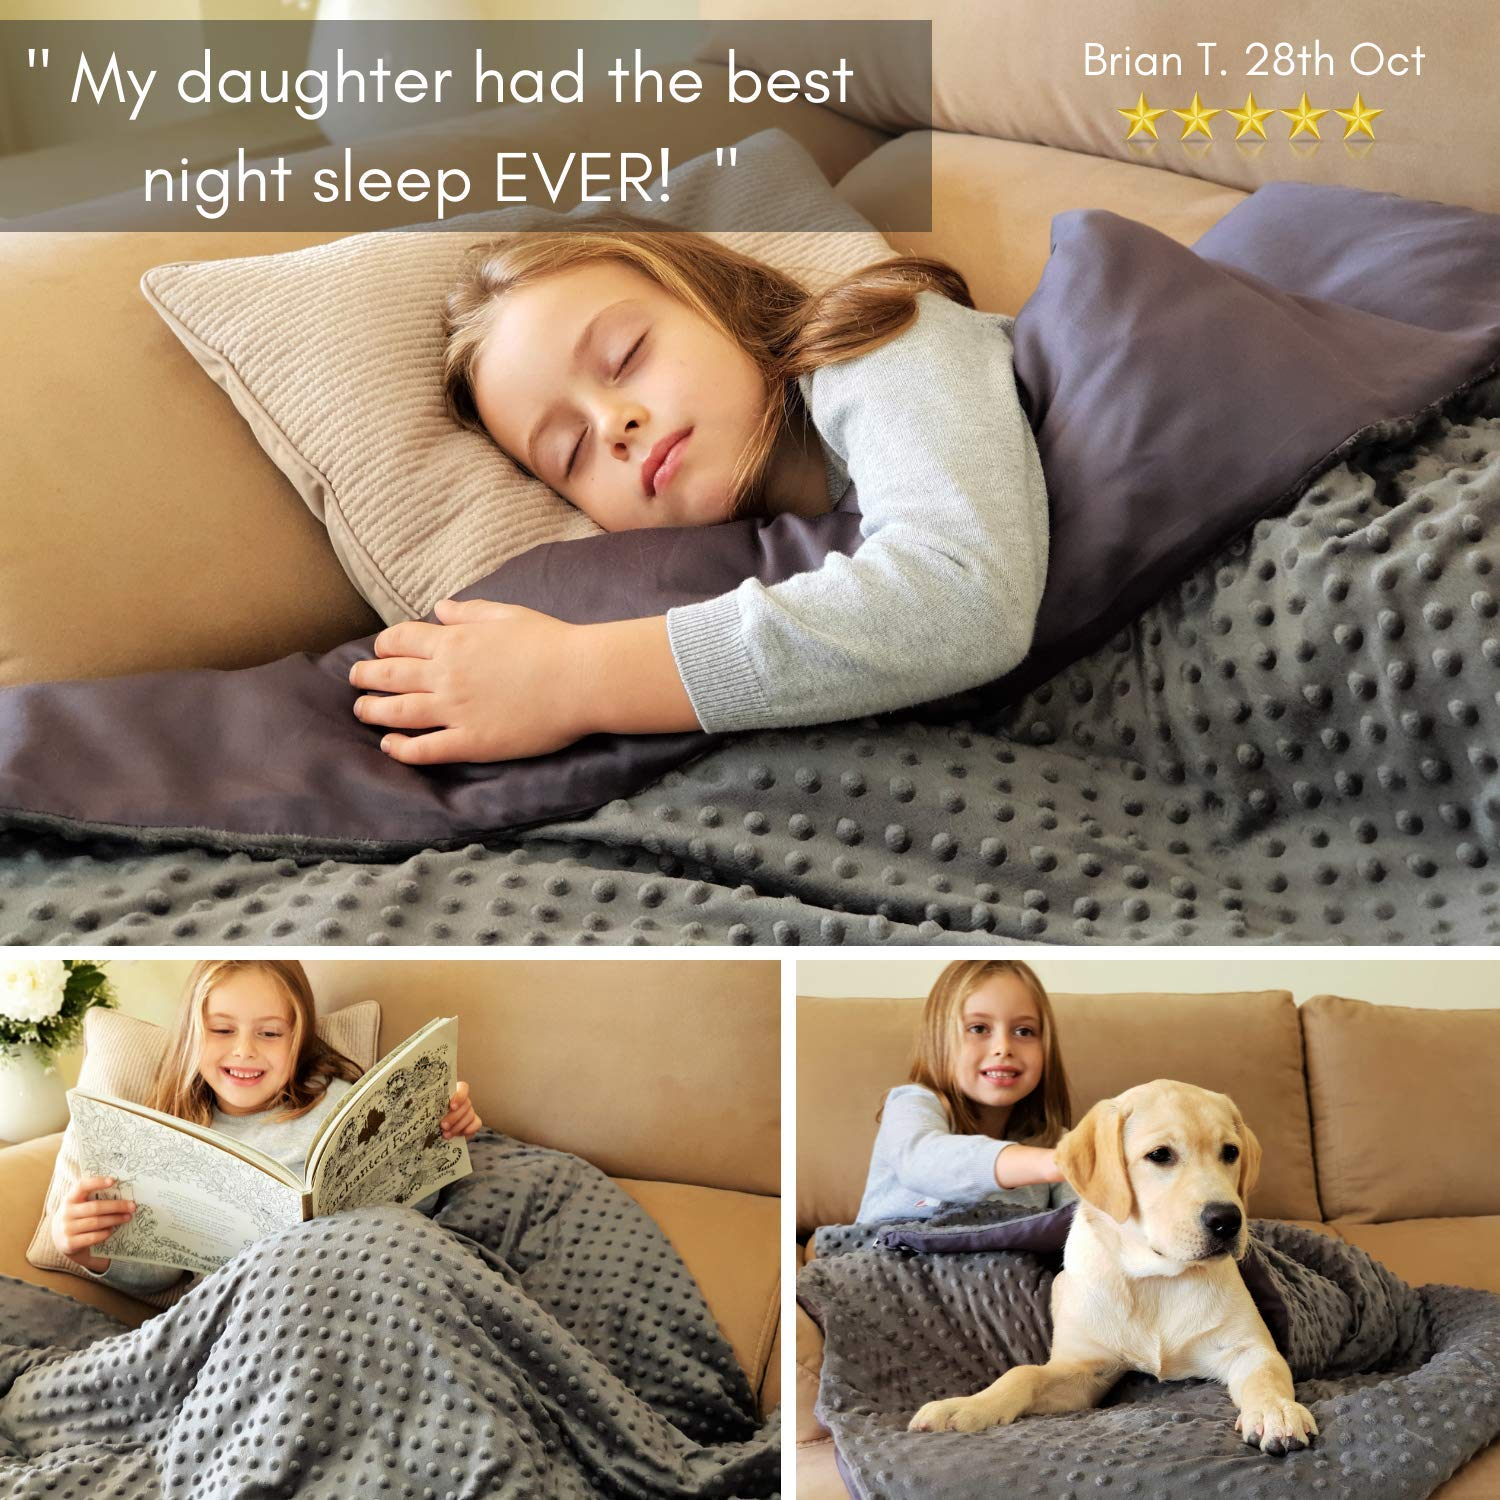 Snuggle Pro Weighted Blanket for Kids, 7 lbs Heavy Blanket, 41''x60'' Twin Size. Set with Bamboo and Minky Duvet Cover